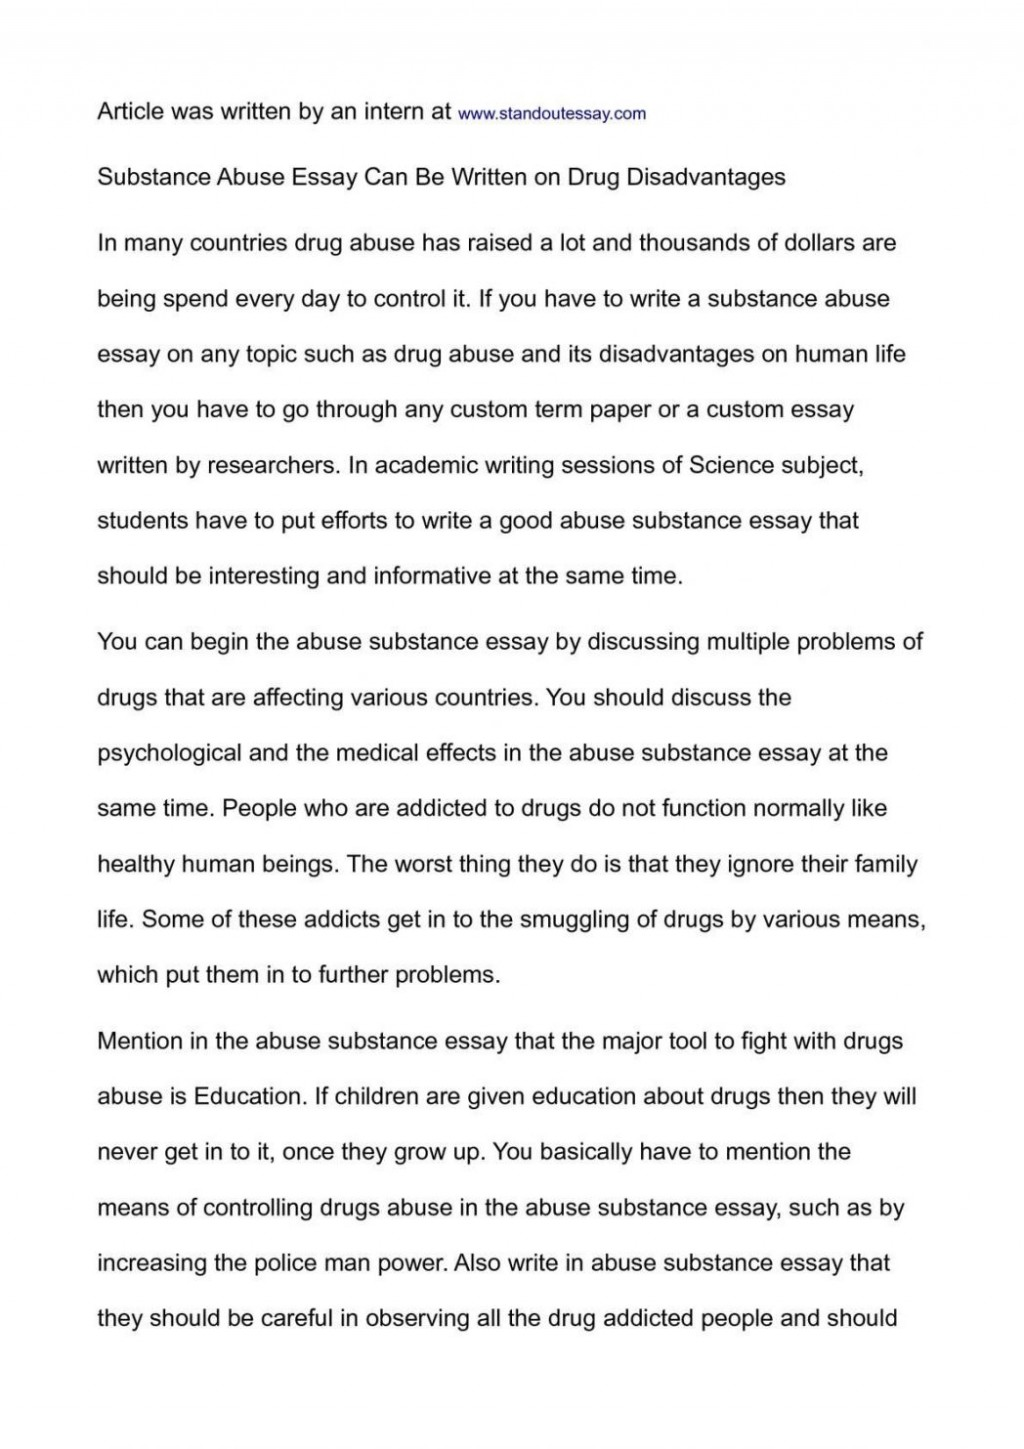 003 Essay Example National Honor Society Conclusion On Substance Abuse Junior Exampl Examples Topics 1048x1483 Archaicawful Of Drug Alcohol Large